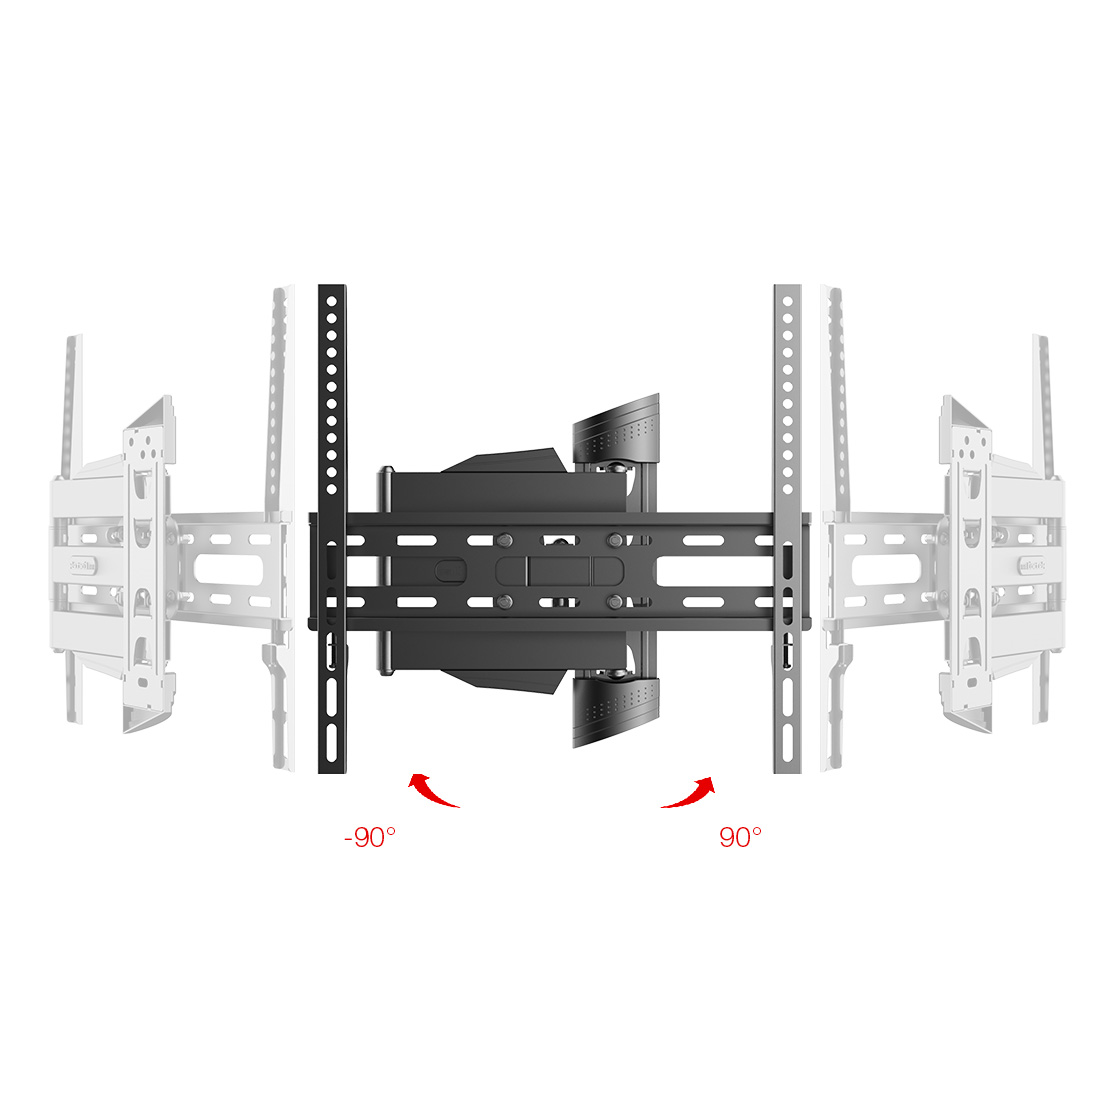 Loctek Full Motion TV Wall Mount Bracket Articulating for 32-50 Inch TV,fits most LCD/LED monitors.It supports monitors up to 55 pounds. you can easily and comfortably adjust screen. Cheap and reasonable Price!